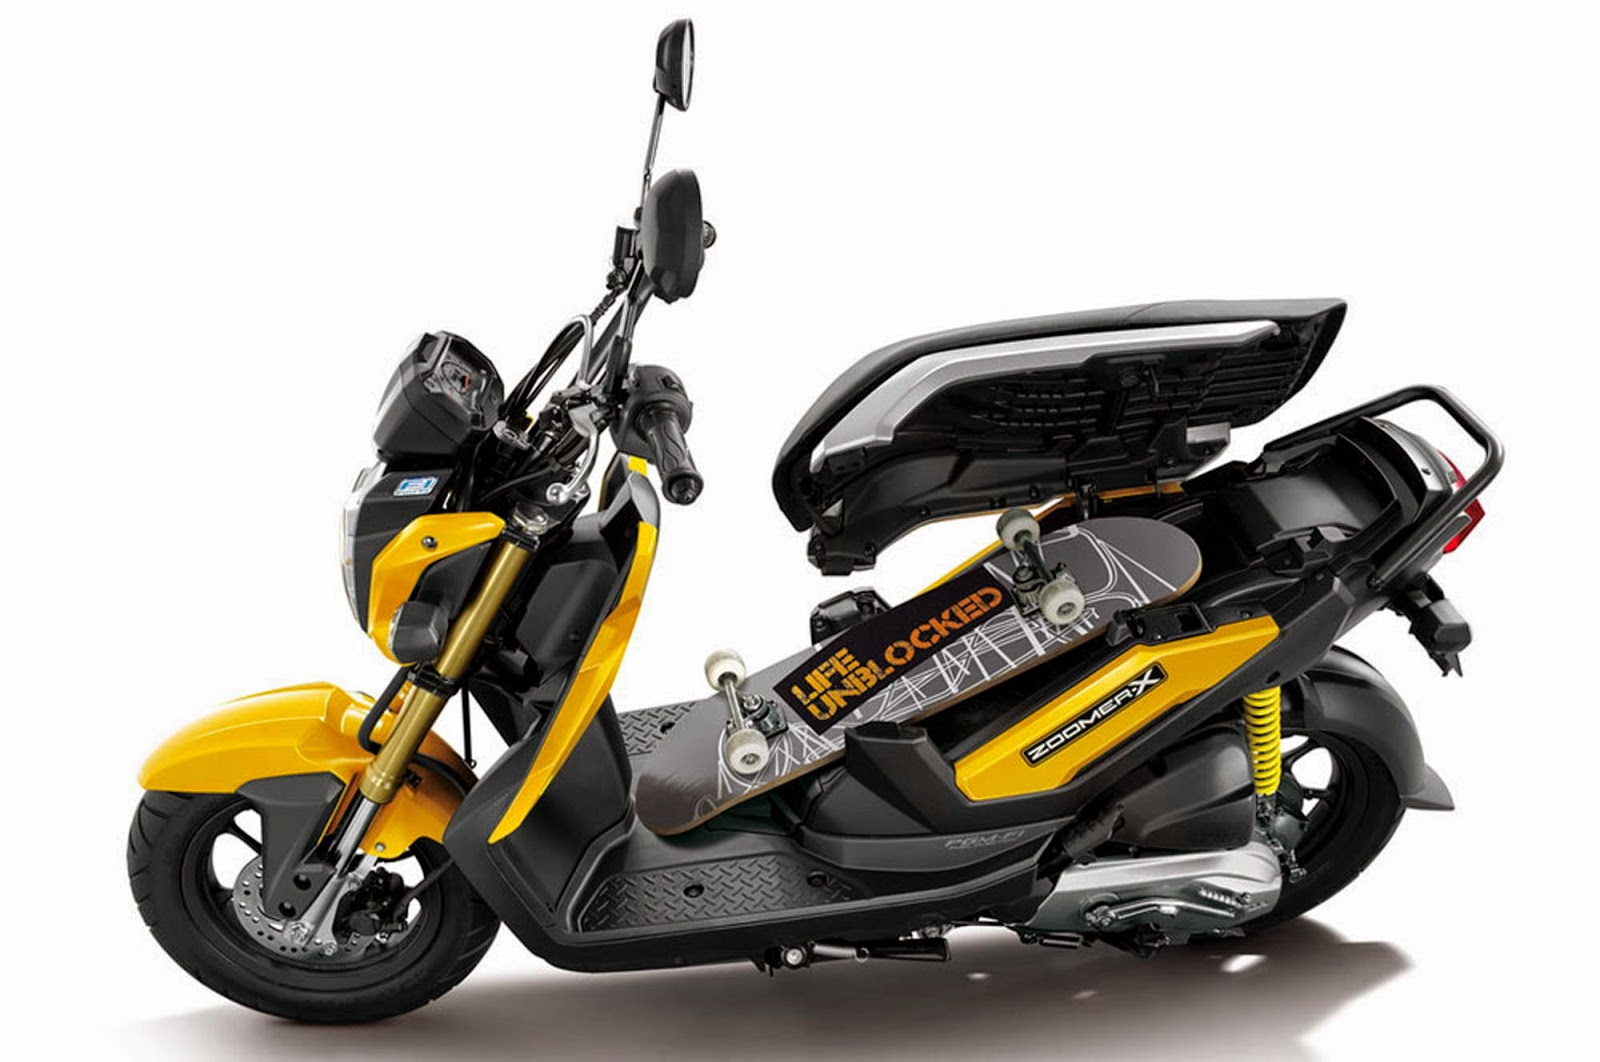 honda zoomer x 2015 price 2100 phnom penh motors. Black Bedroom Furniture Sets. Home Design Ideas